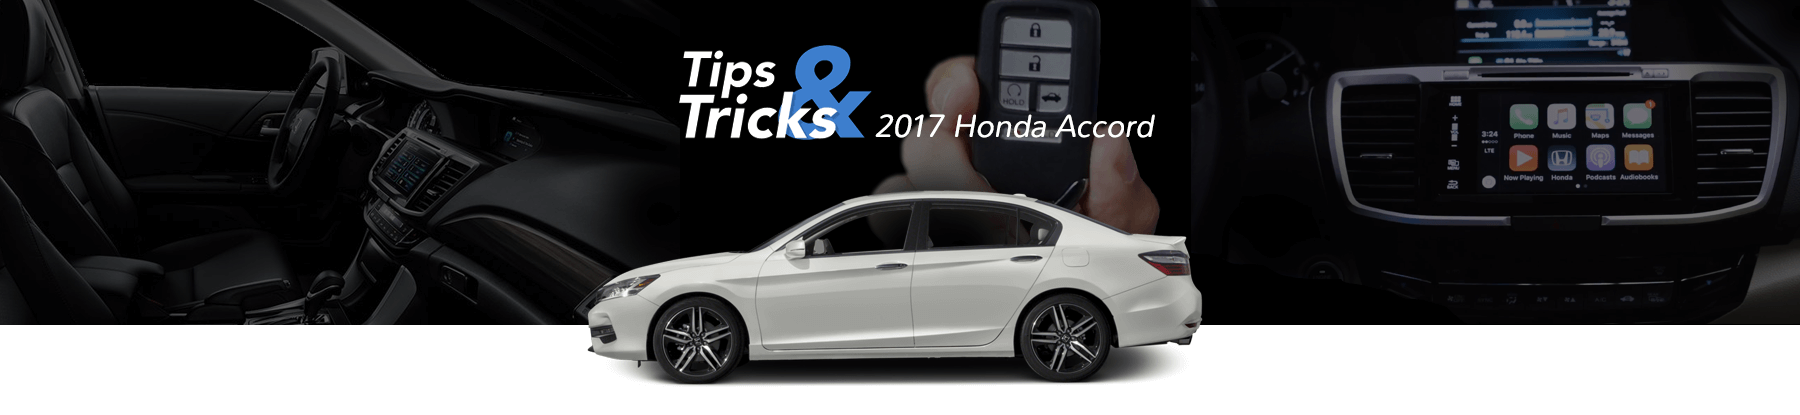 2017 Honda Accord Tips & Tricks Banner